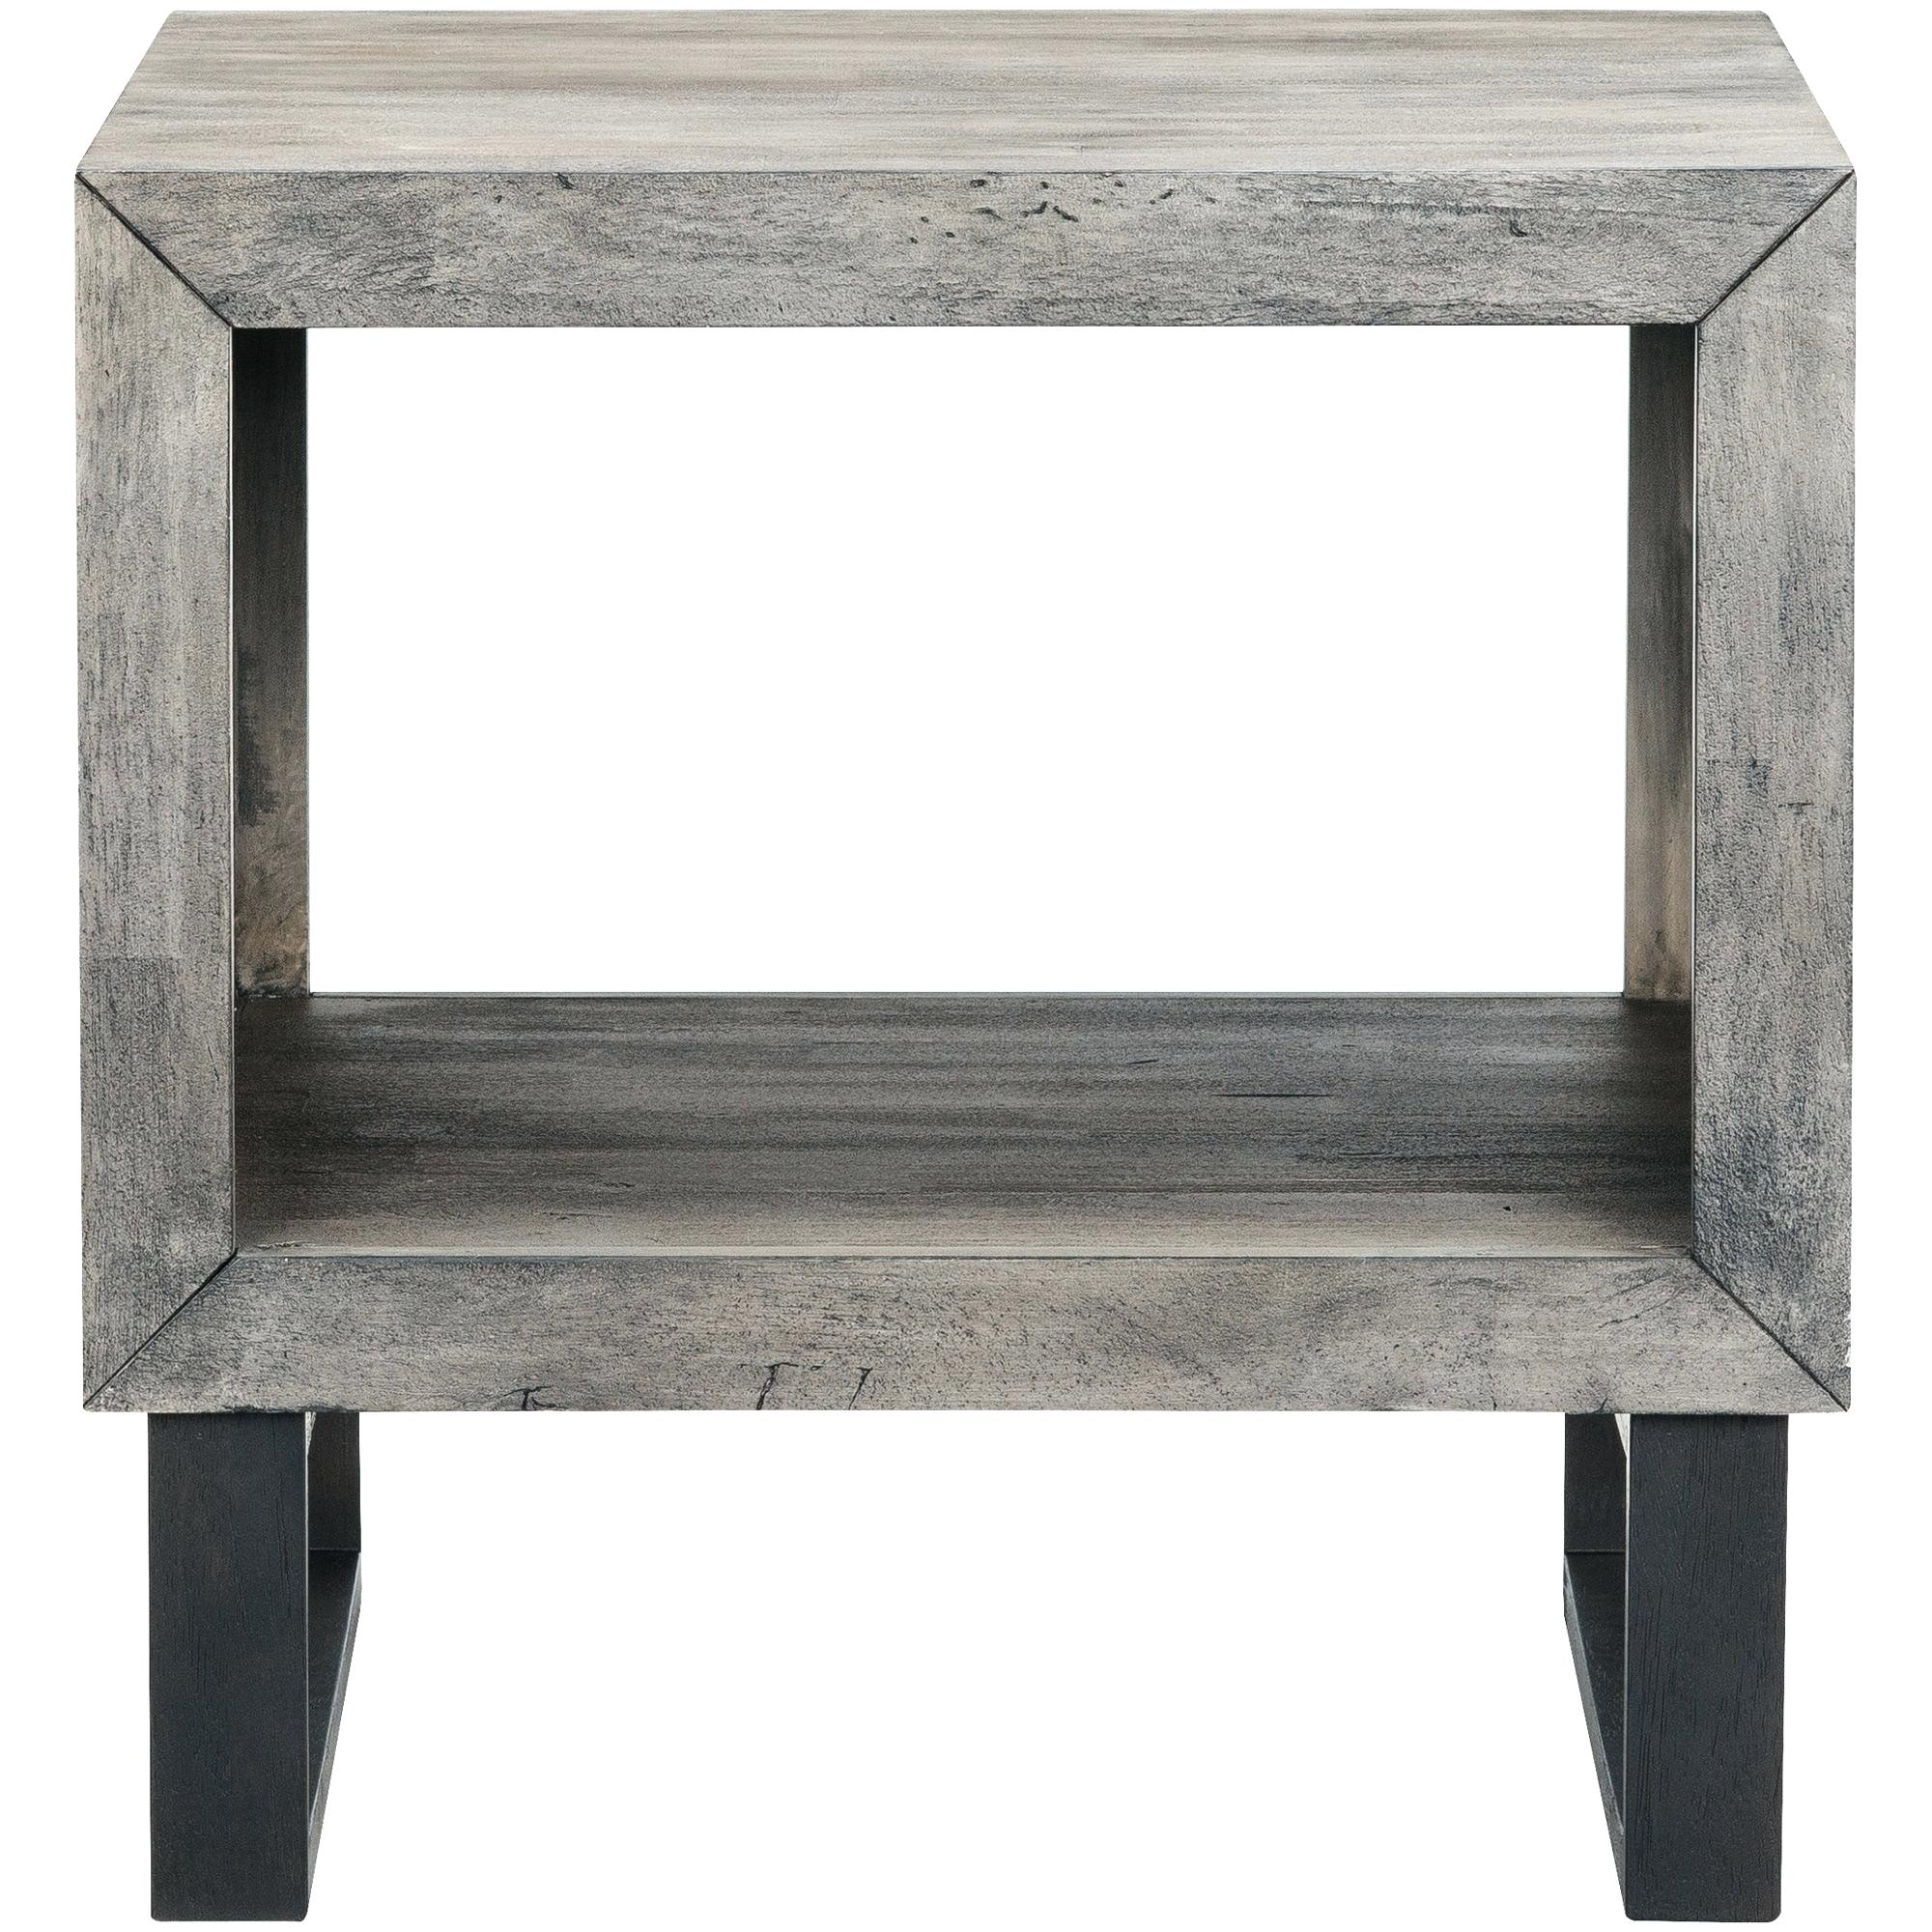 grey accent table ash small drive sandblasted gray target console lamps wood top ideas black dining chairs outdoor battery extra side quality bedroom furniture wicker edmonton